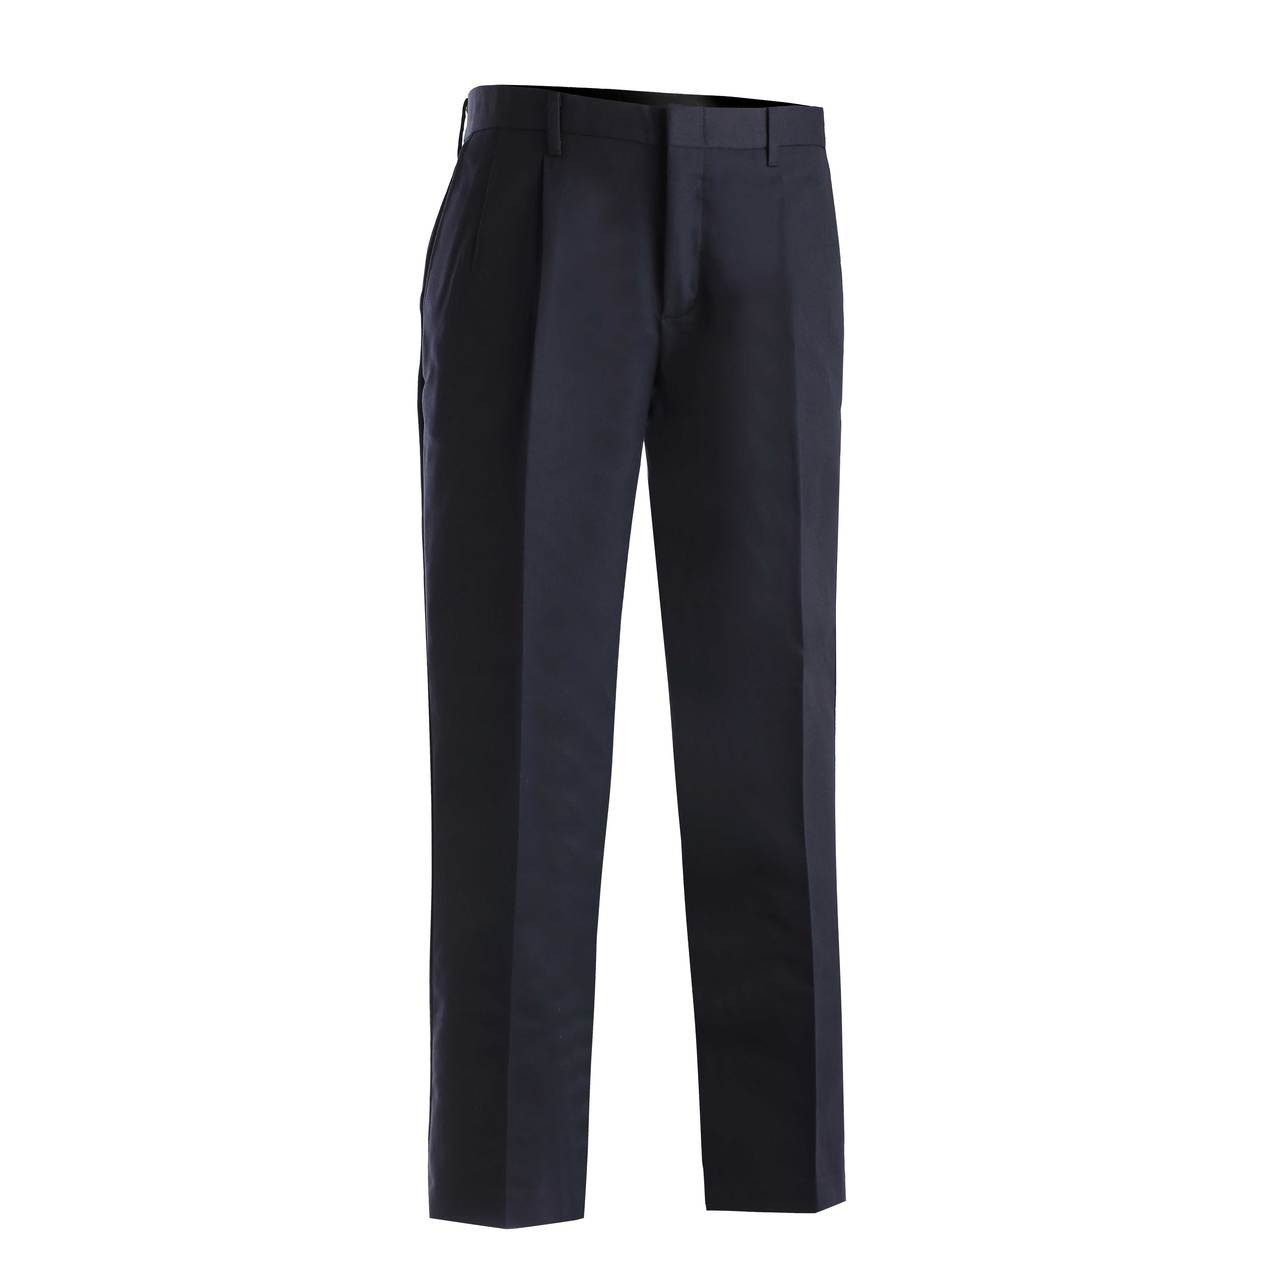 Men's Pleated Front Chino Pants